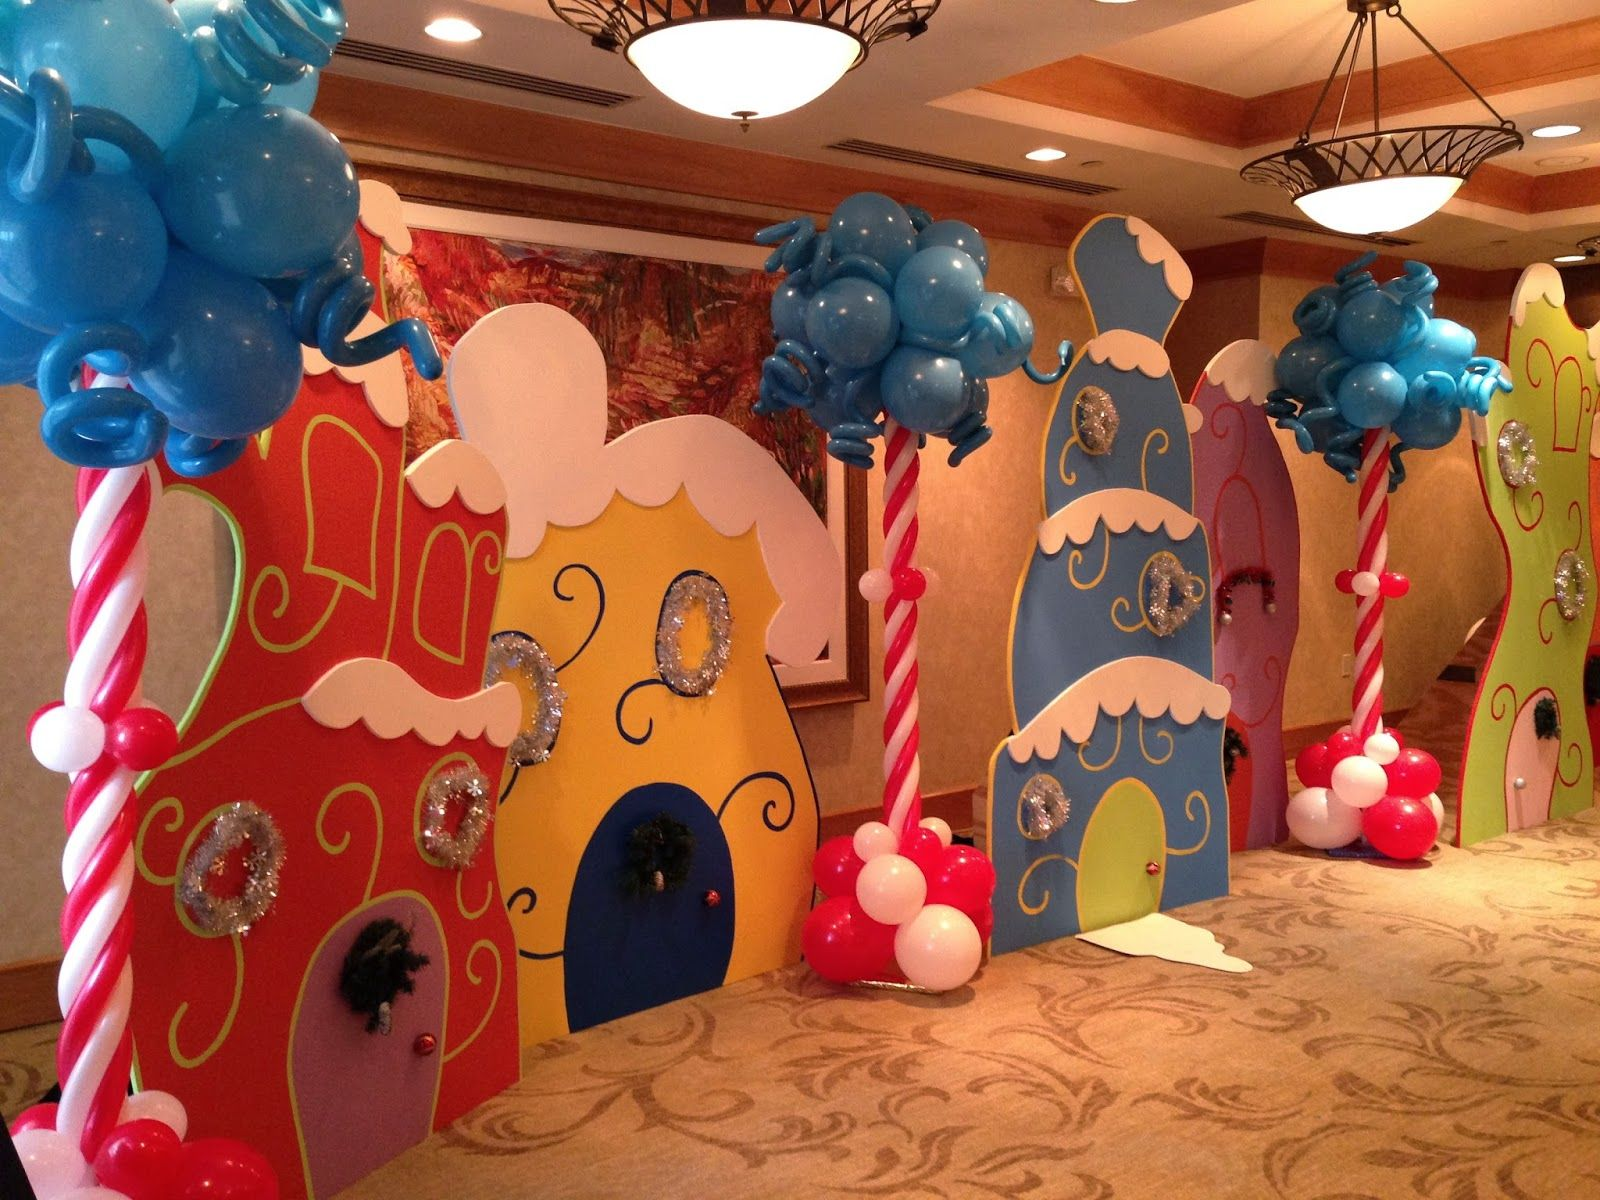 Dr Seuss Party Decorations Dreamark Events Blog The Cat In The Hat Dr Seuss Party Dr